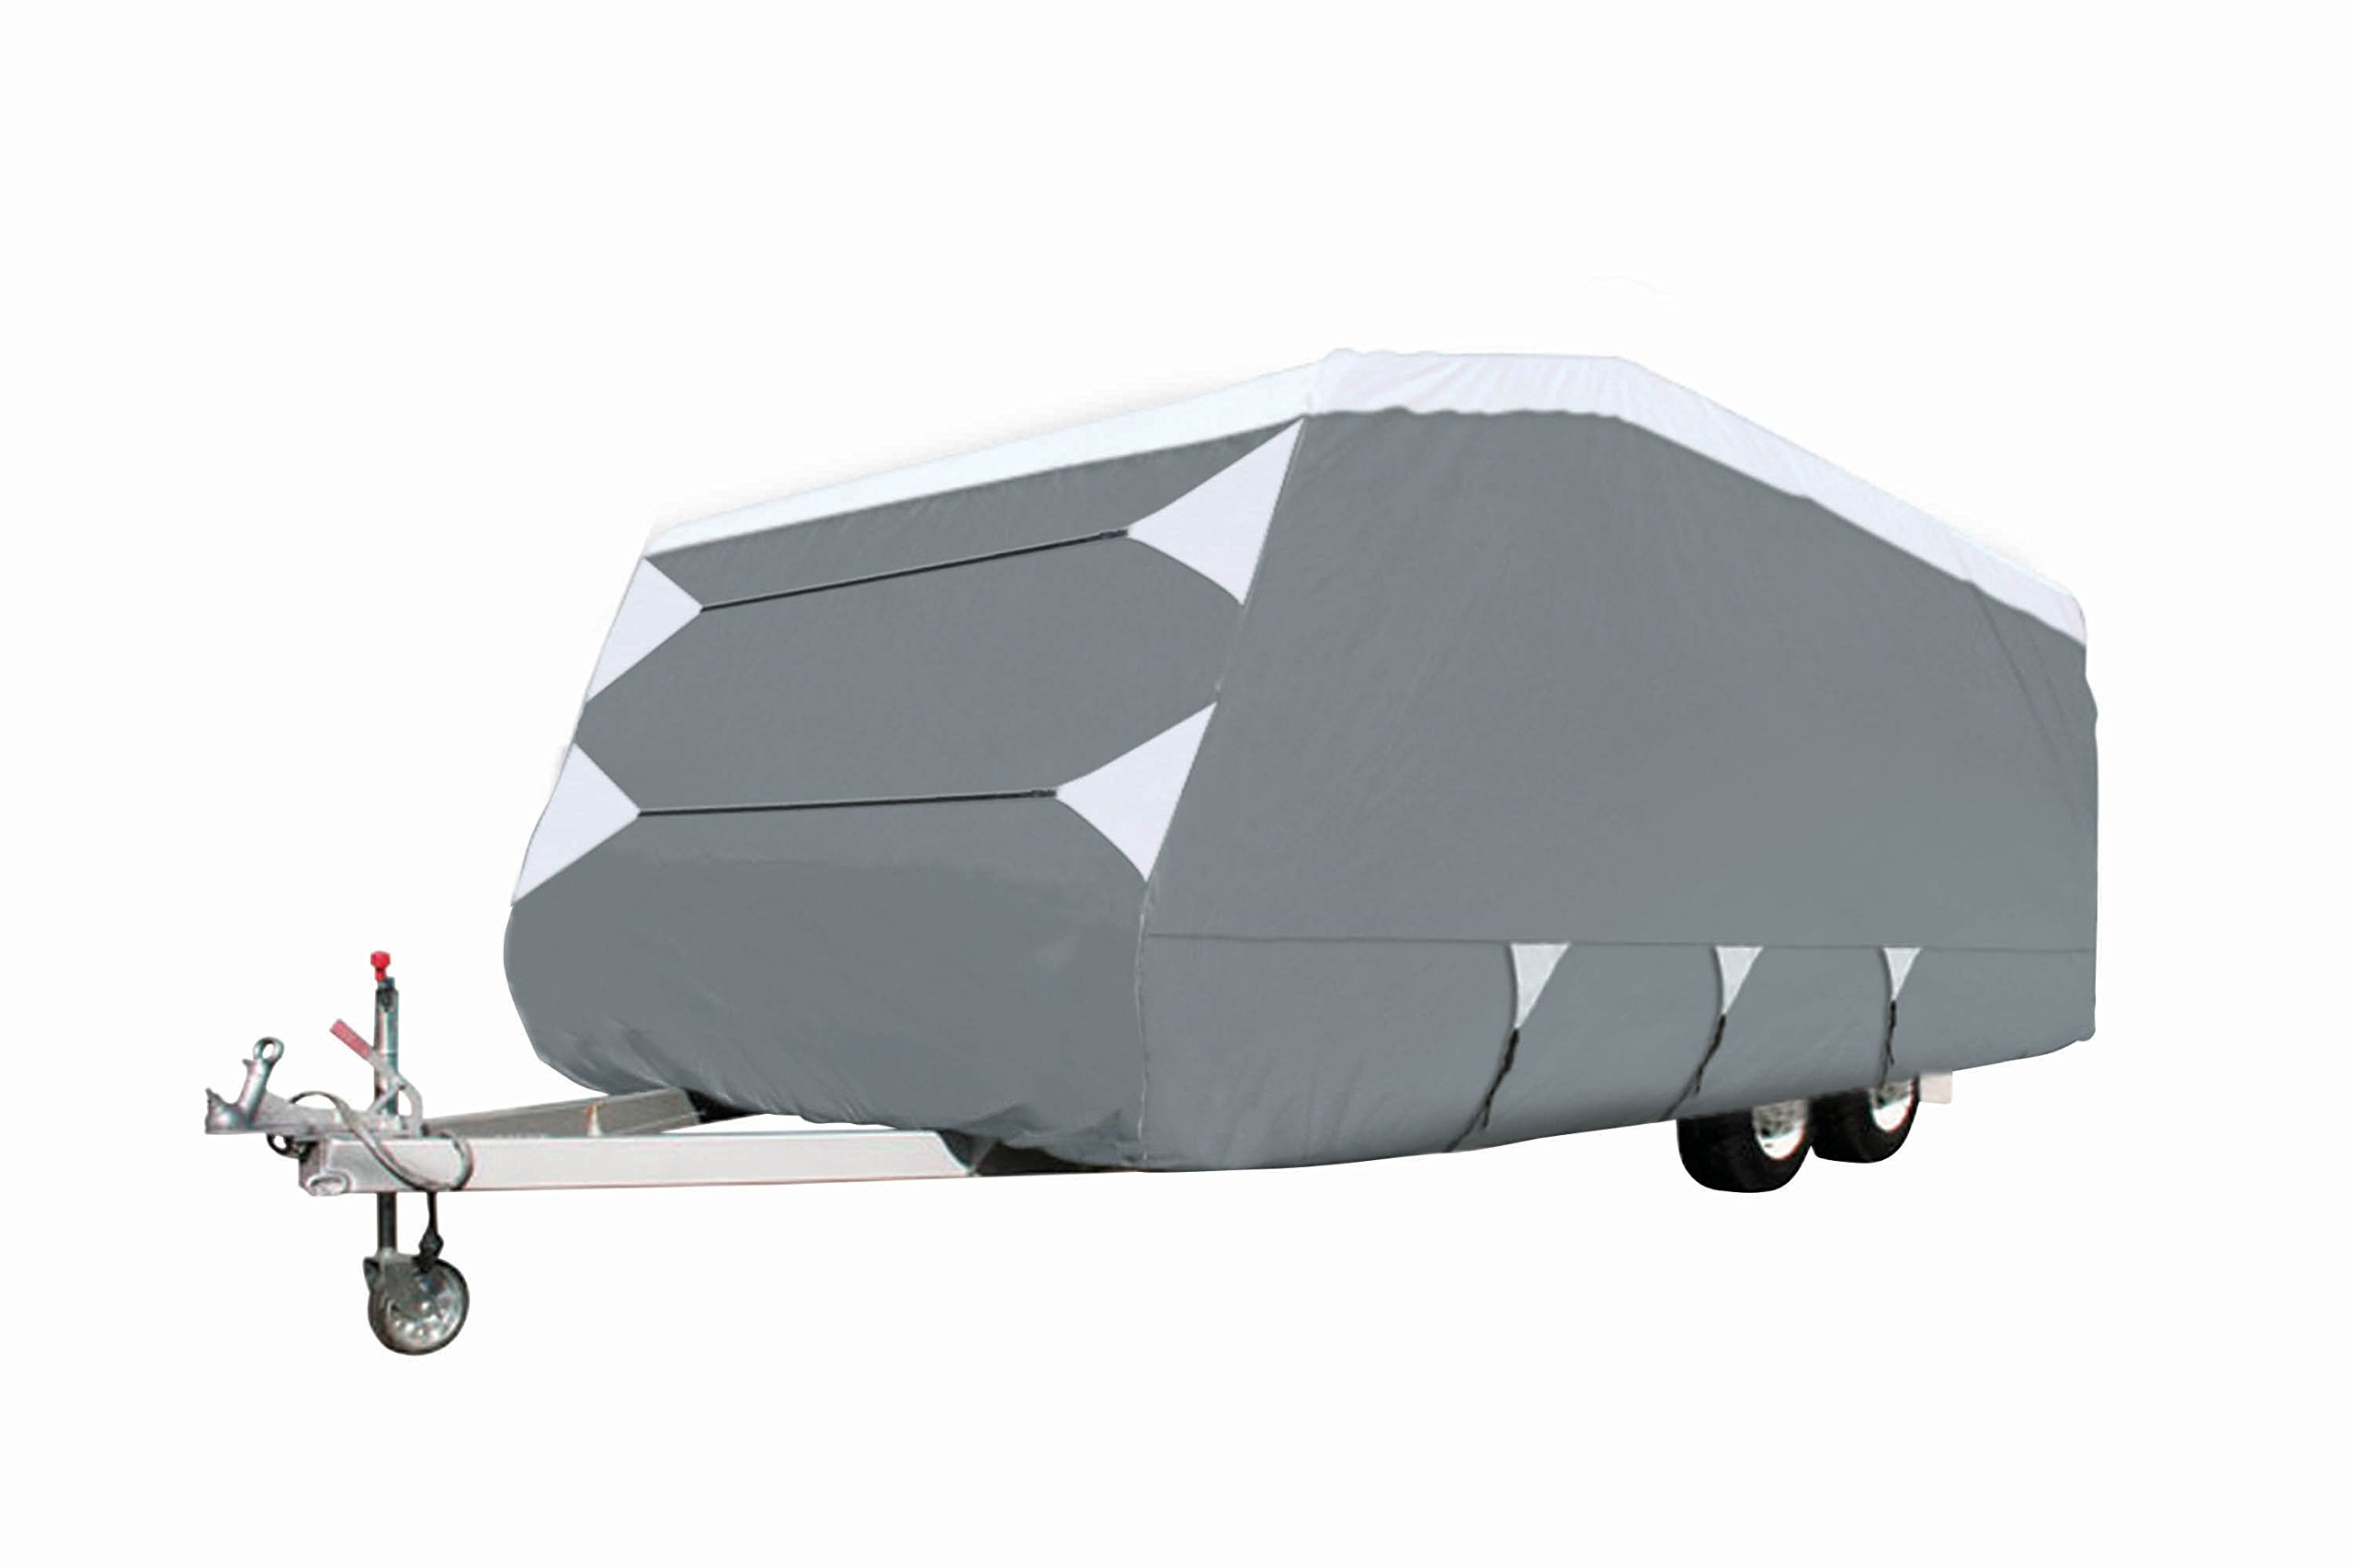 Classic Accessories PolyPro 3 RV Cover For 16-18' Pop Up Camping Trailers